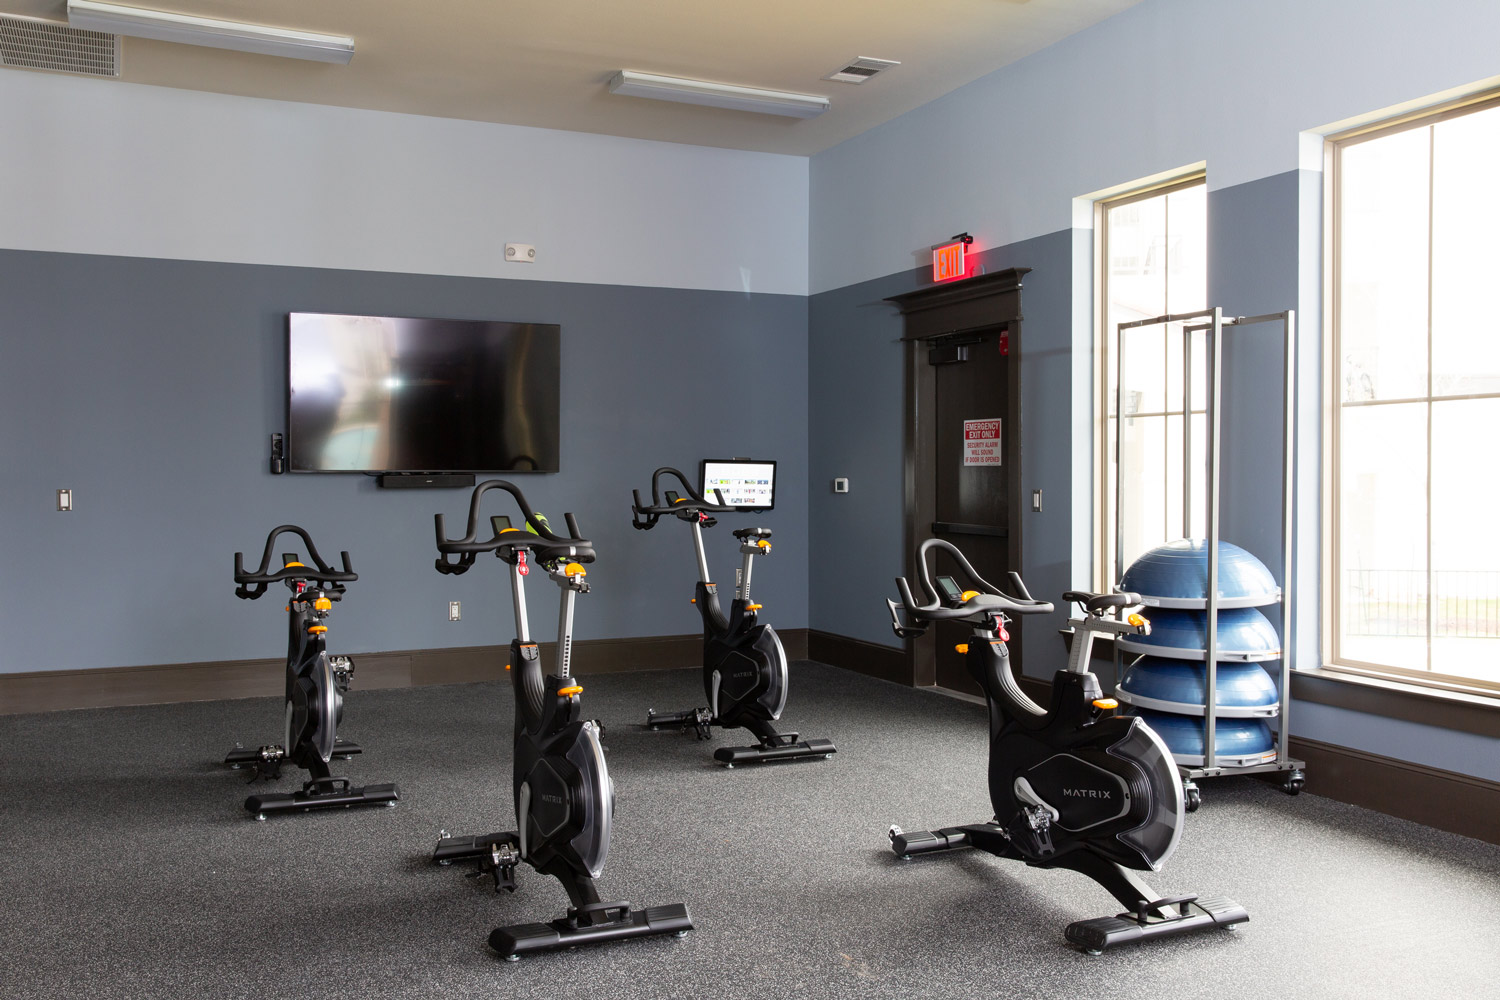 Cardio Equipment at Oxford at Santa Clara Apartments in Pflugerville, Texas